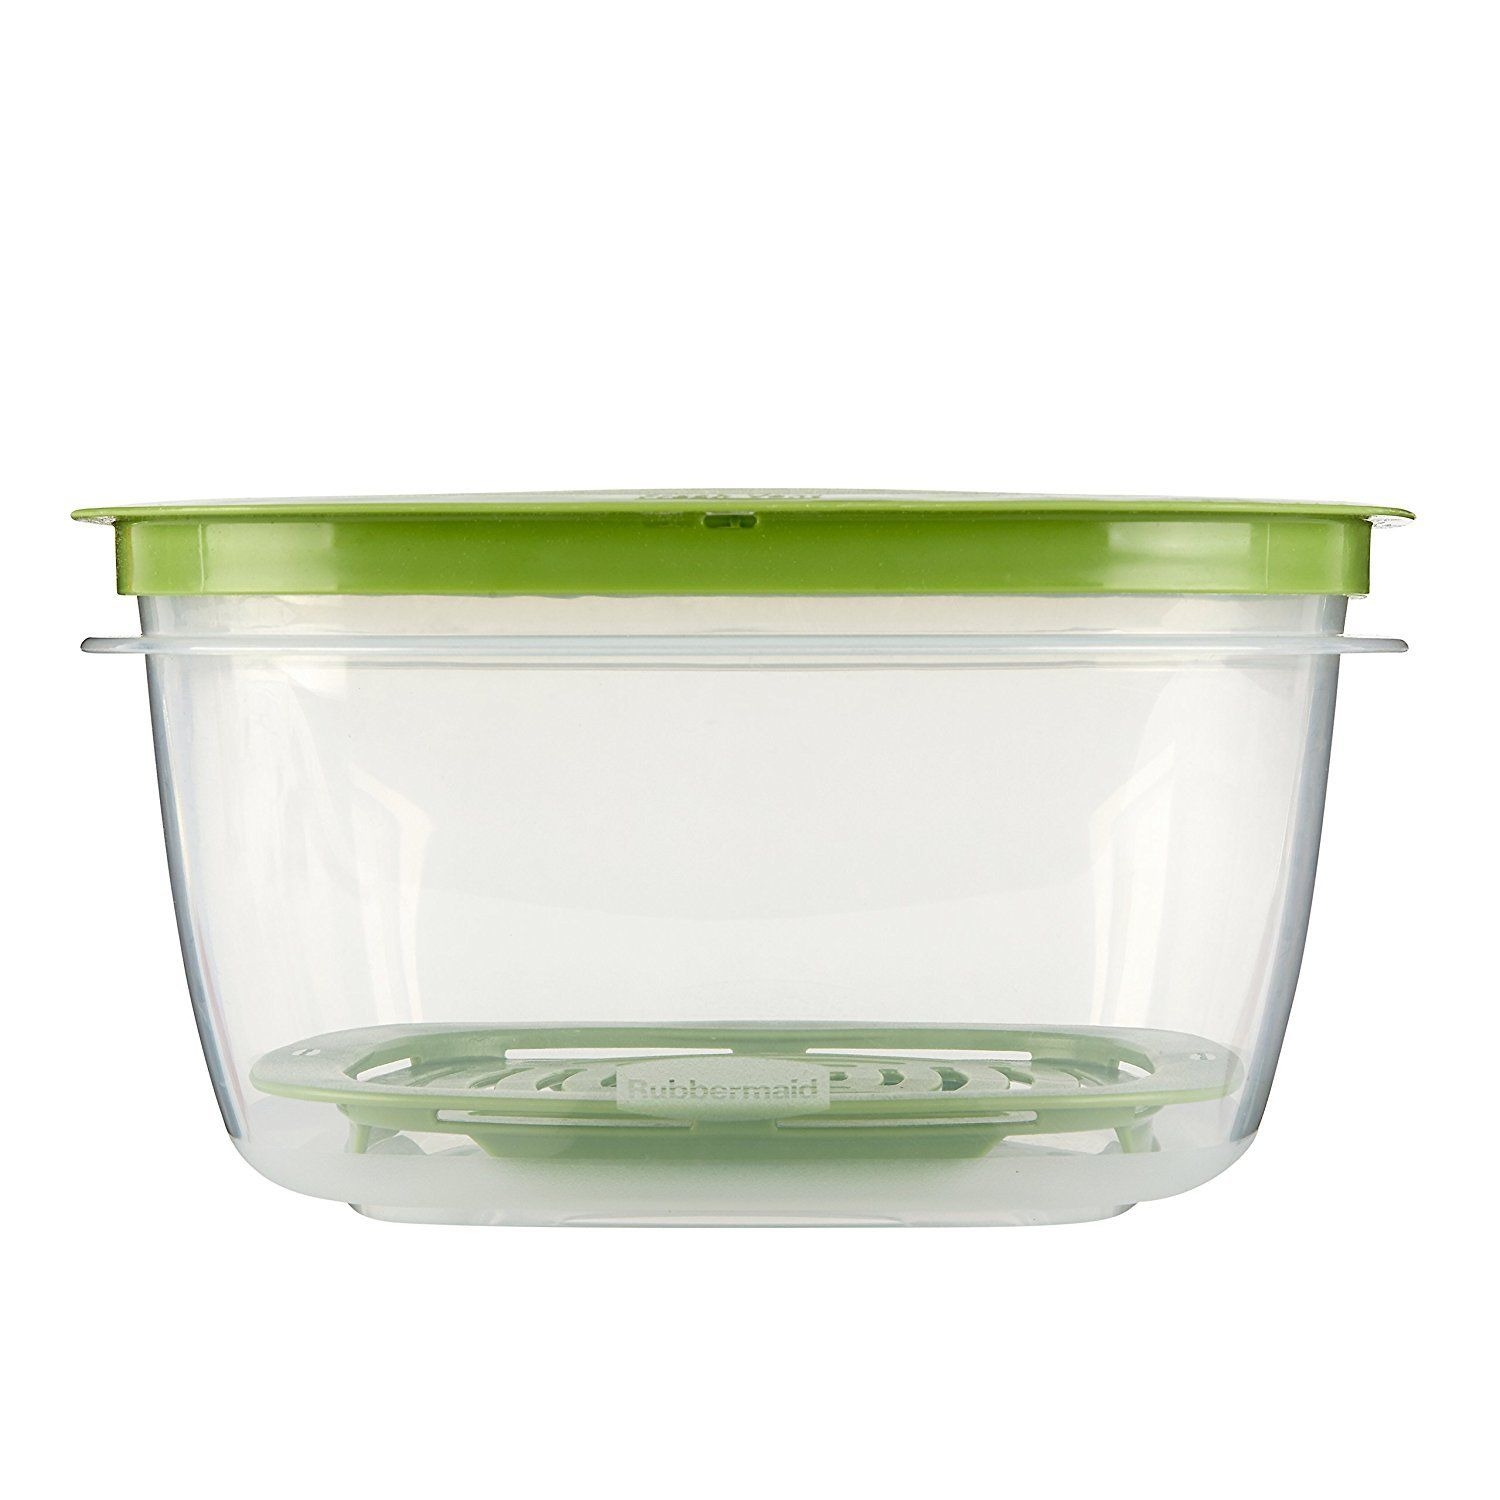 Rubbermaid Produce Saver Food Storage Container, 14-Cup 1